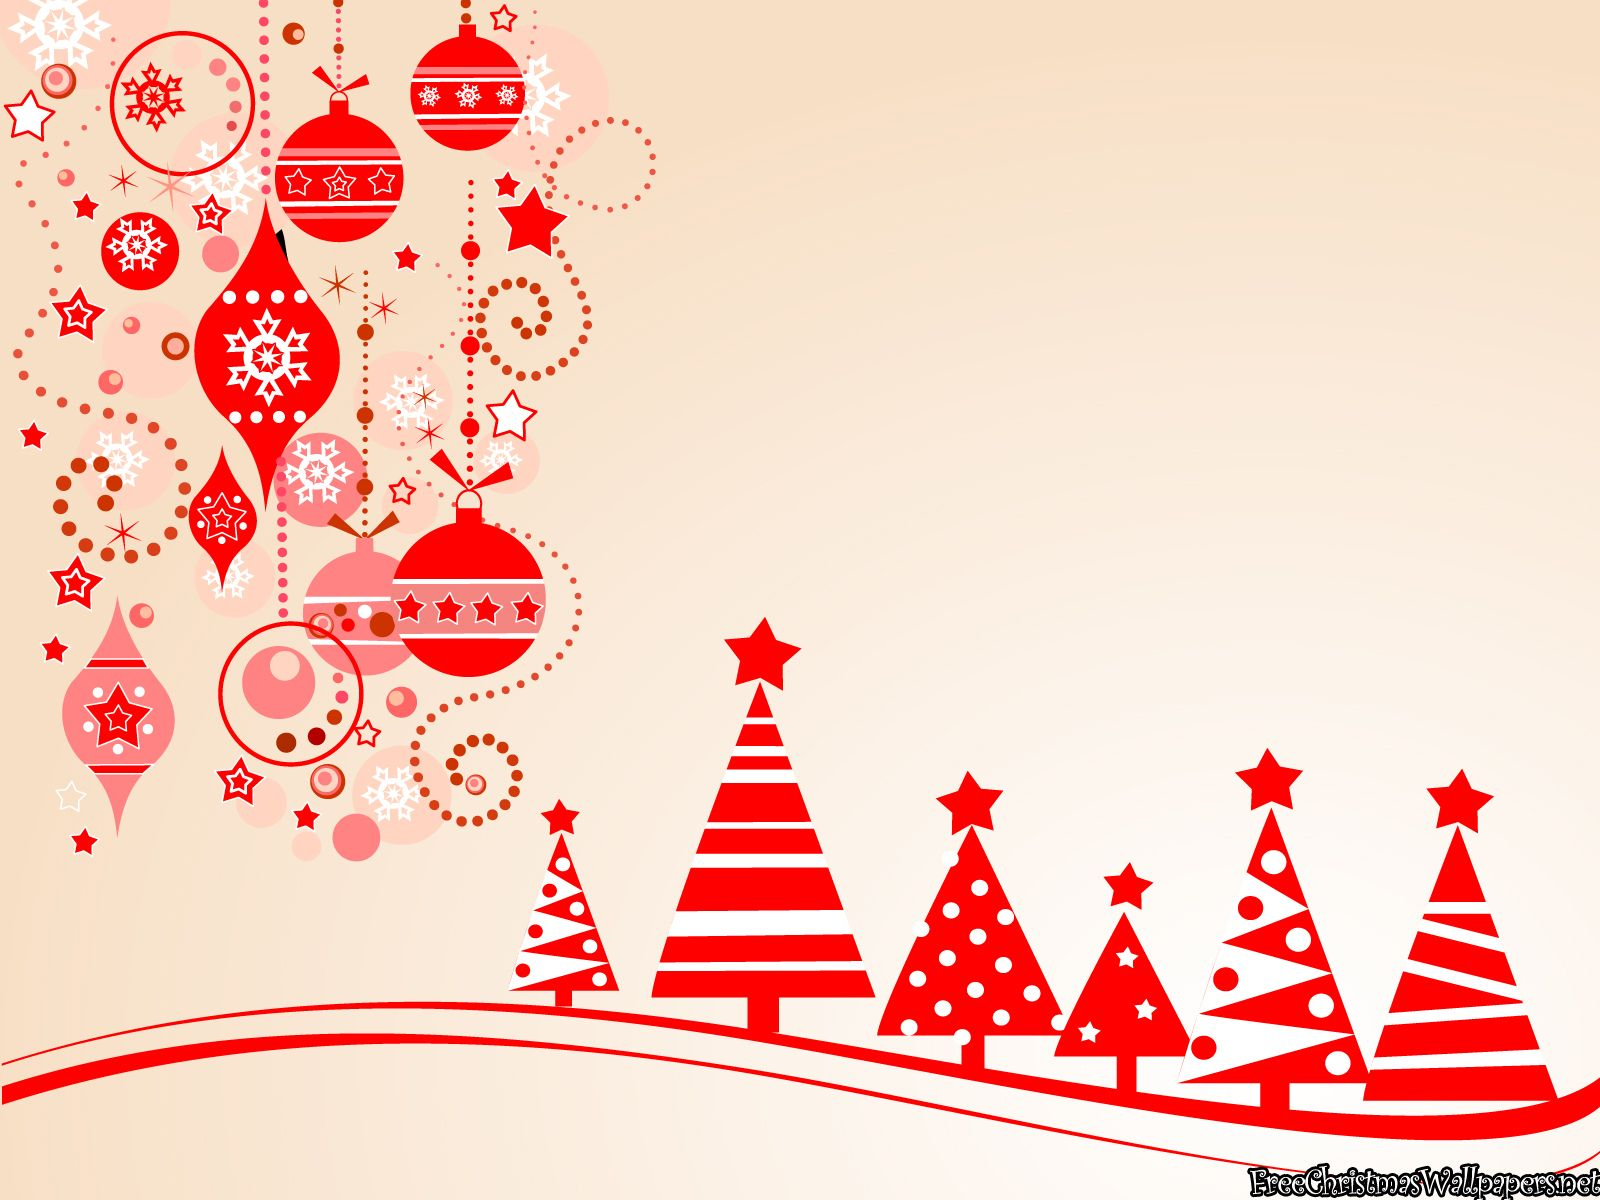 Free Christmas Clipart, Graphics, Borders and more